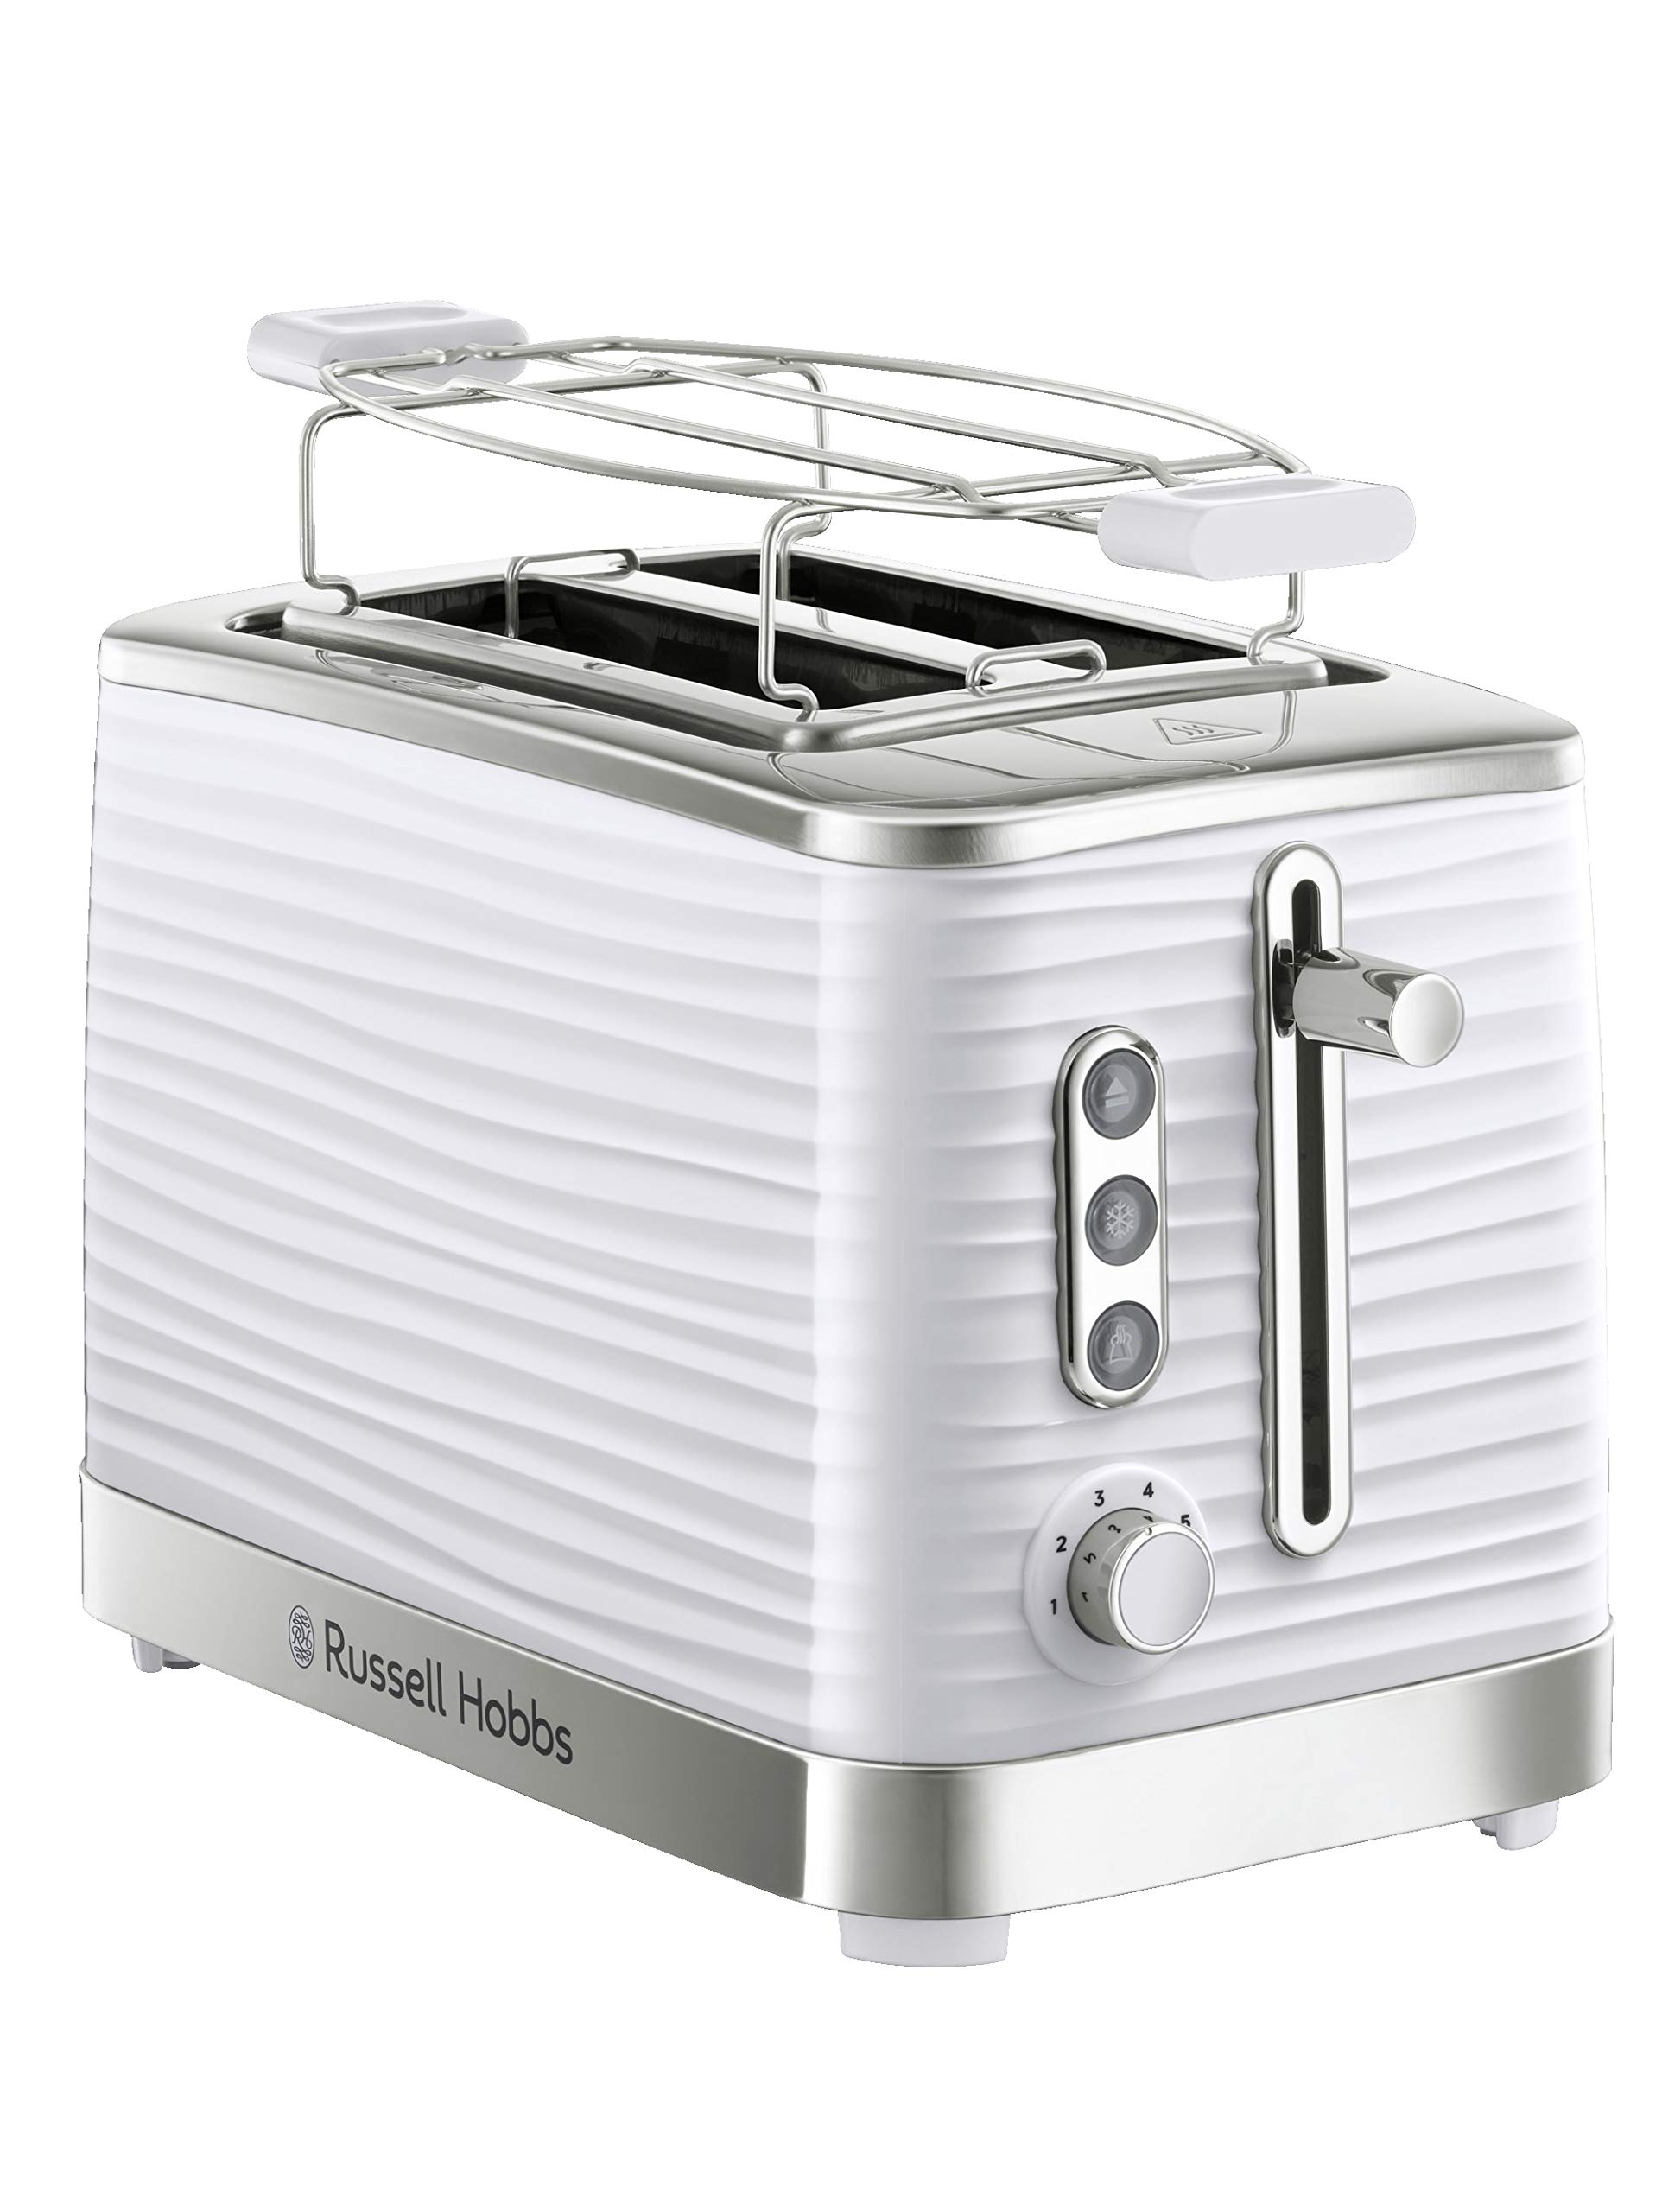 Unisex-Russell-Hobbs-Toaster-Inspire-White-24370-56-by-Russell-Hobbs